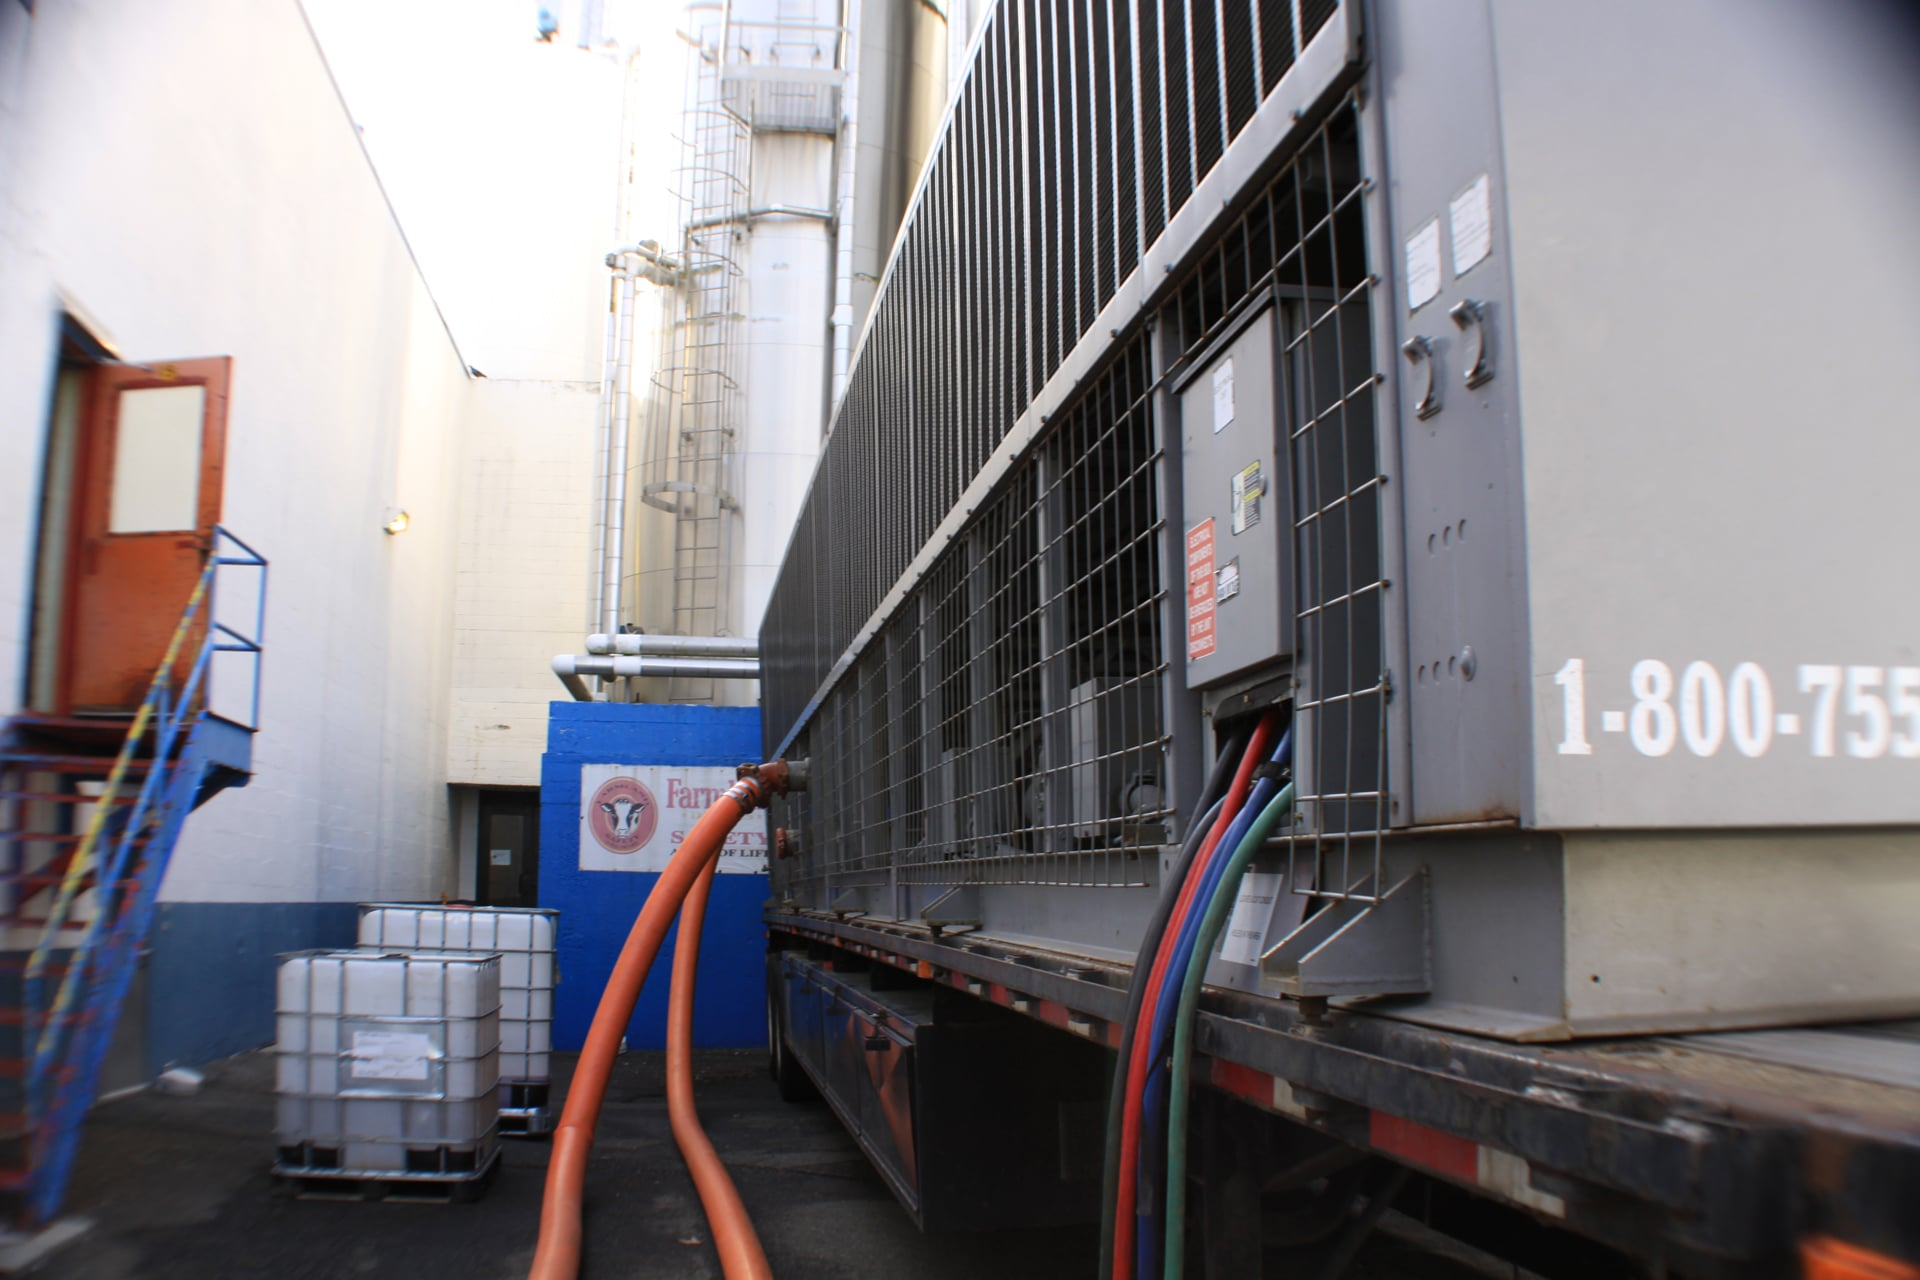 Temporary Chiller Grand Isle County VT, Air Cooled Chiller Rental Grand Isle County VT